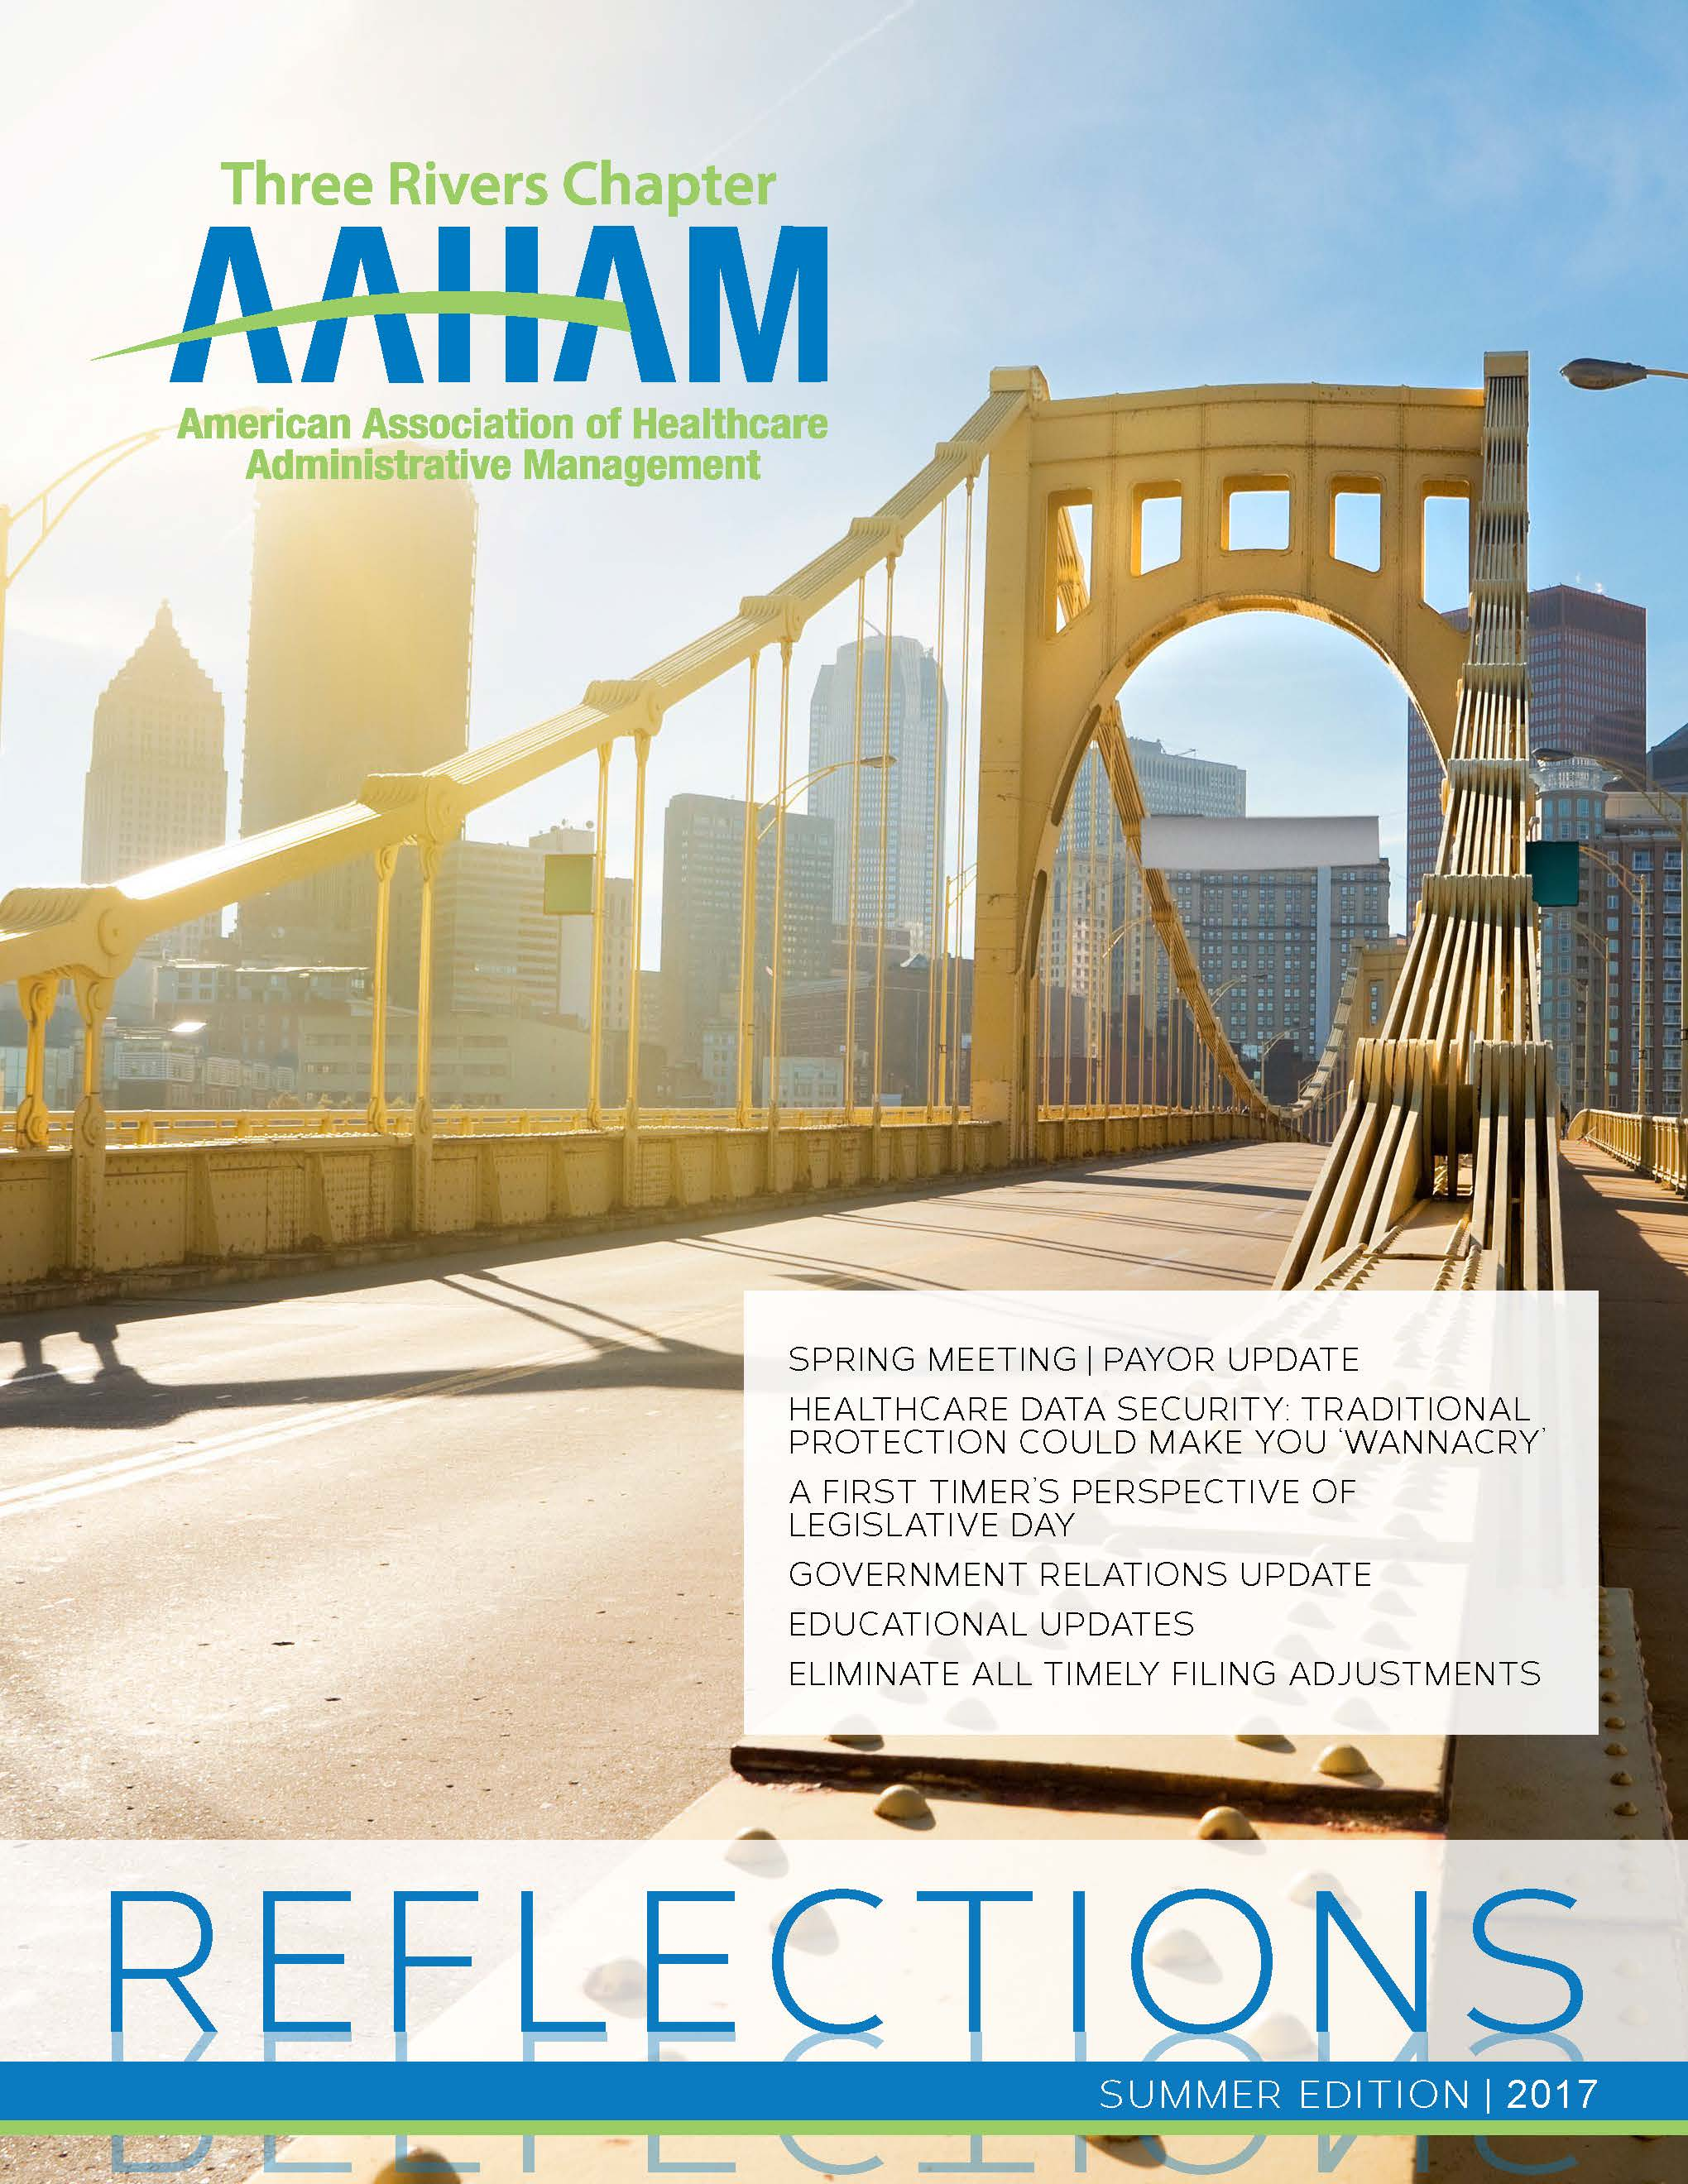 Reflections Newsletter | Summer 2017 - Revenue Cycle News Western Pennsylvania